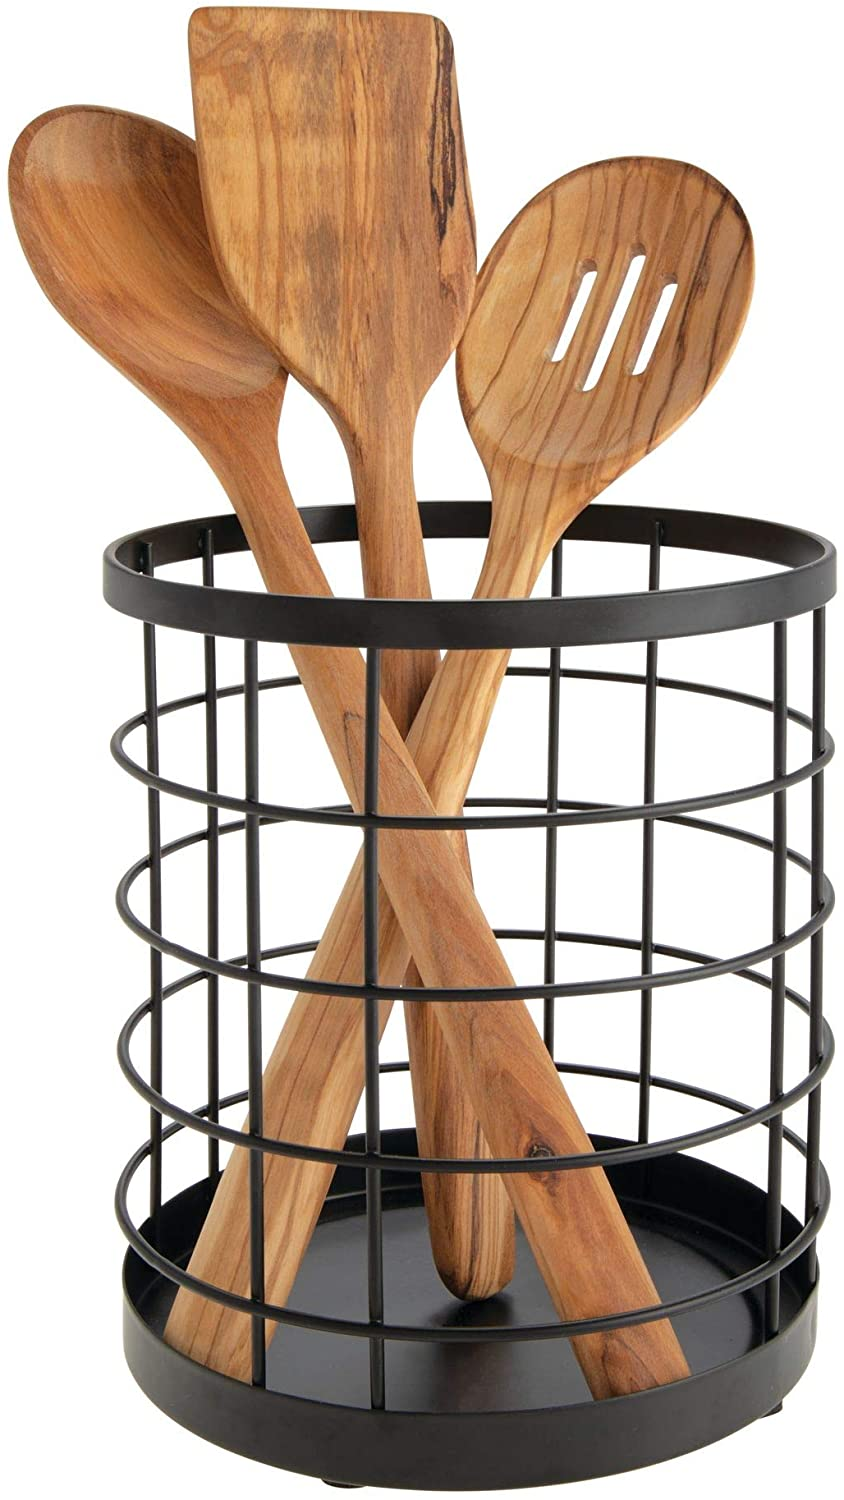 iDesign Kitchen Utensil Holder, Metal Wire Utensil Storage Basket, Practical Kitchen Utensil Organiser for Wooden Spoons, Spatulas and More, Matte Black, 15.2 x 15.2 x 17.8 cm